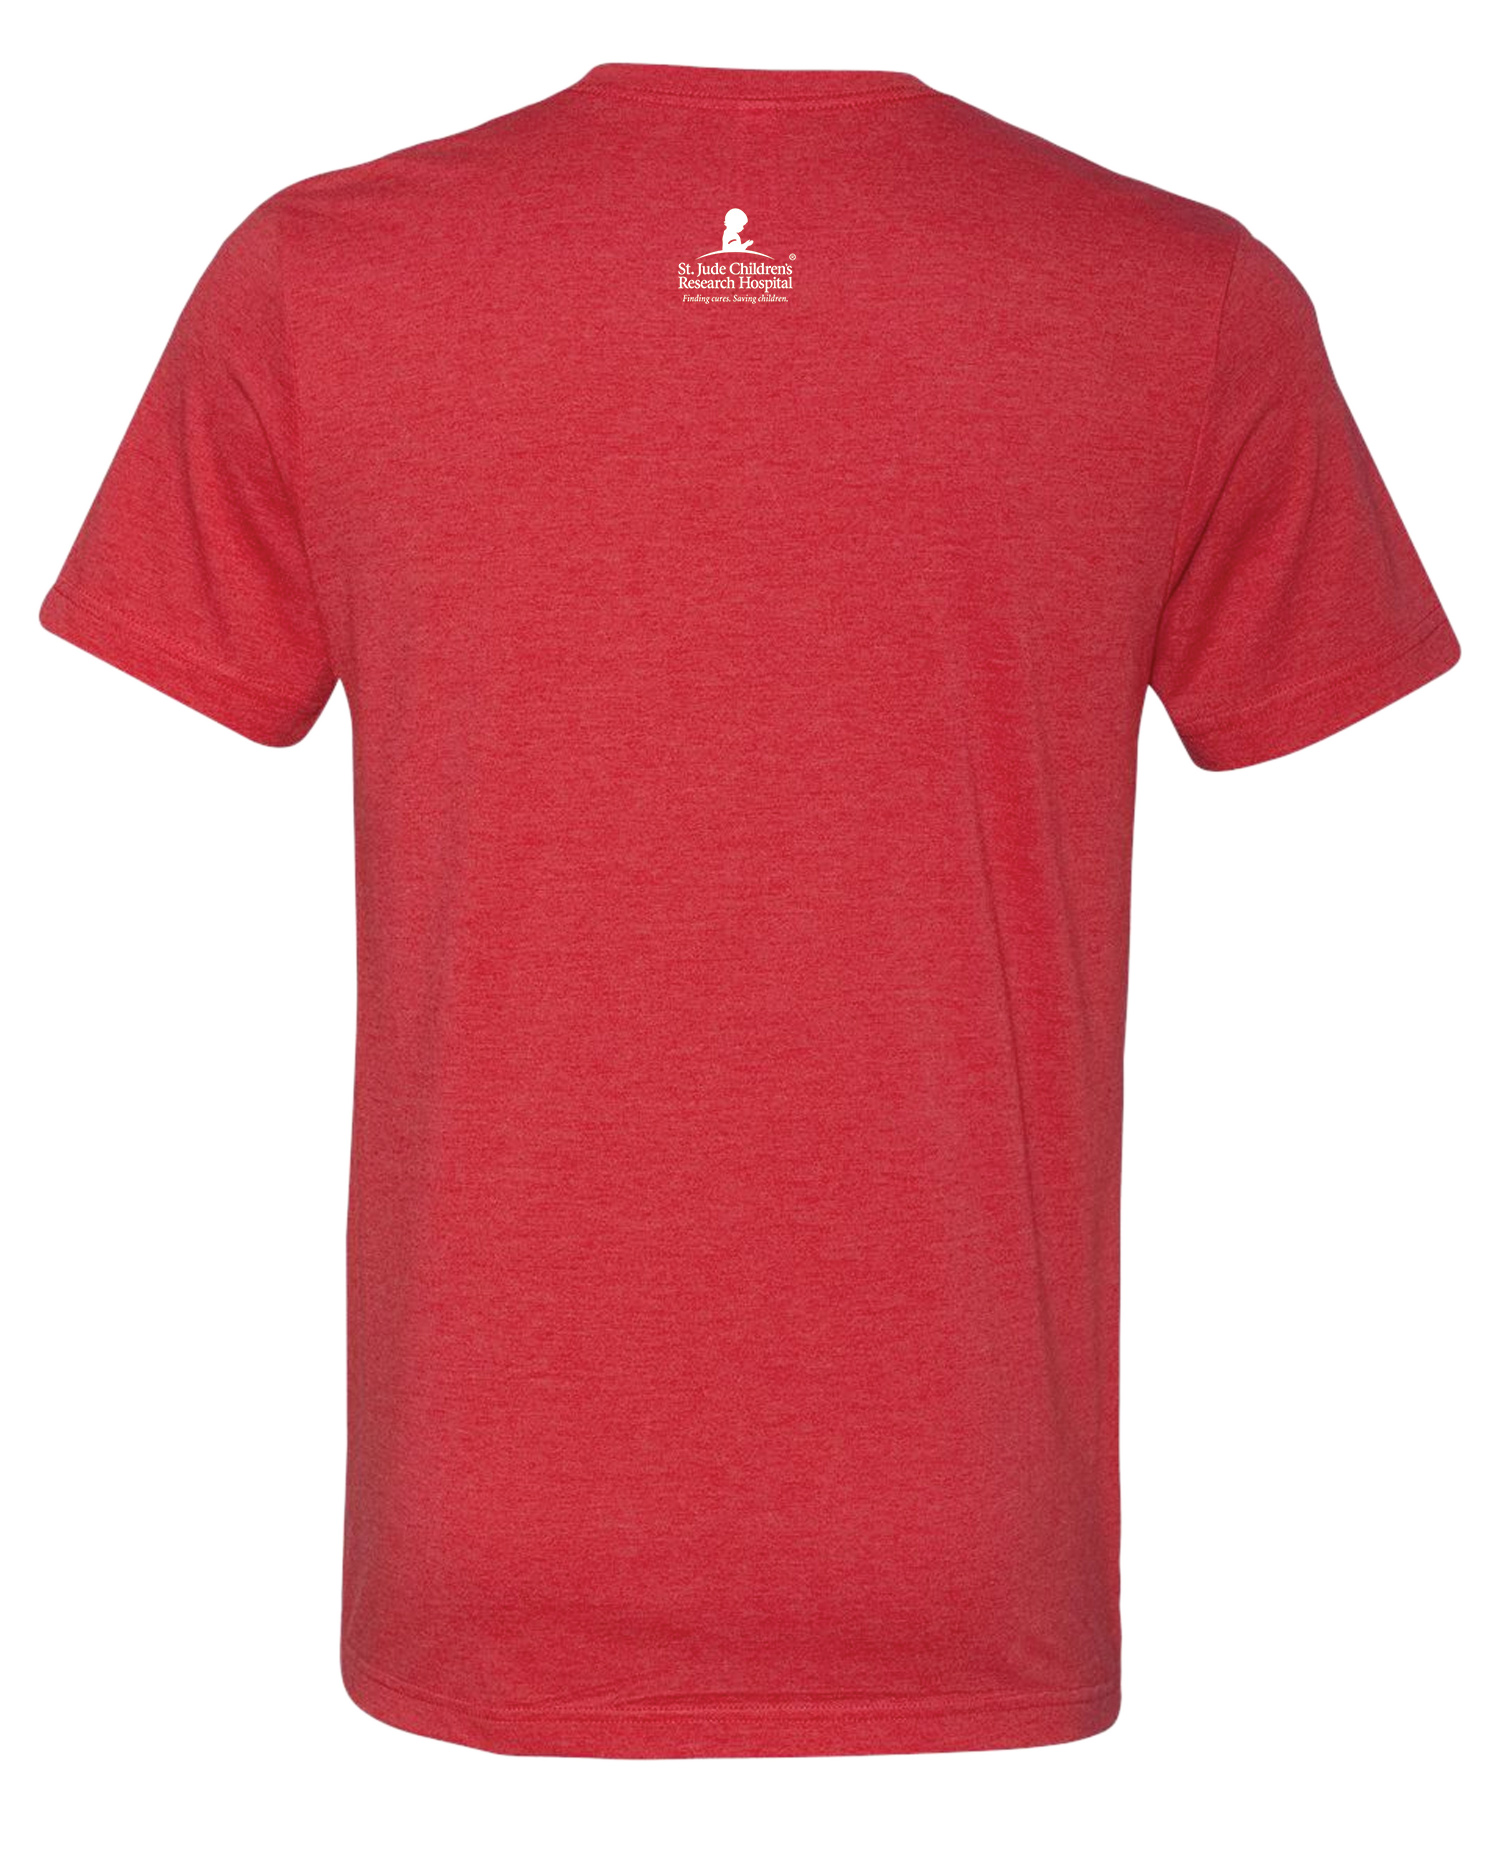 Unisex Proud Supporter T-Shirt - Red